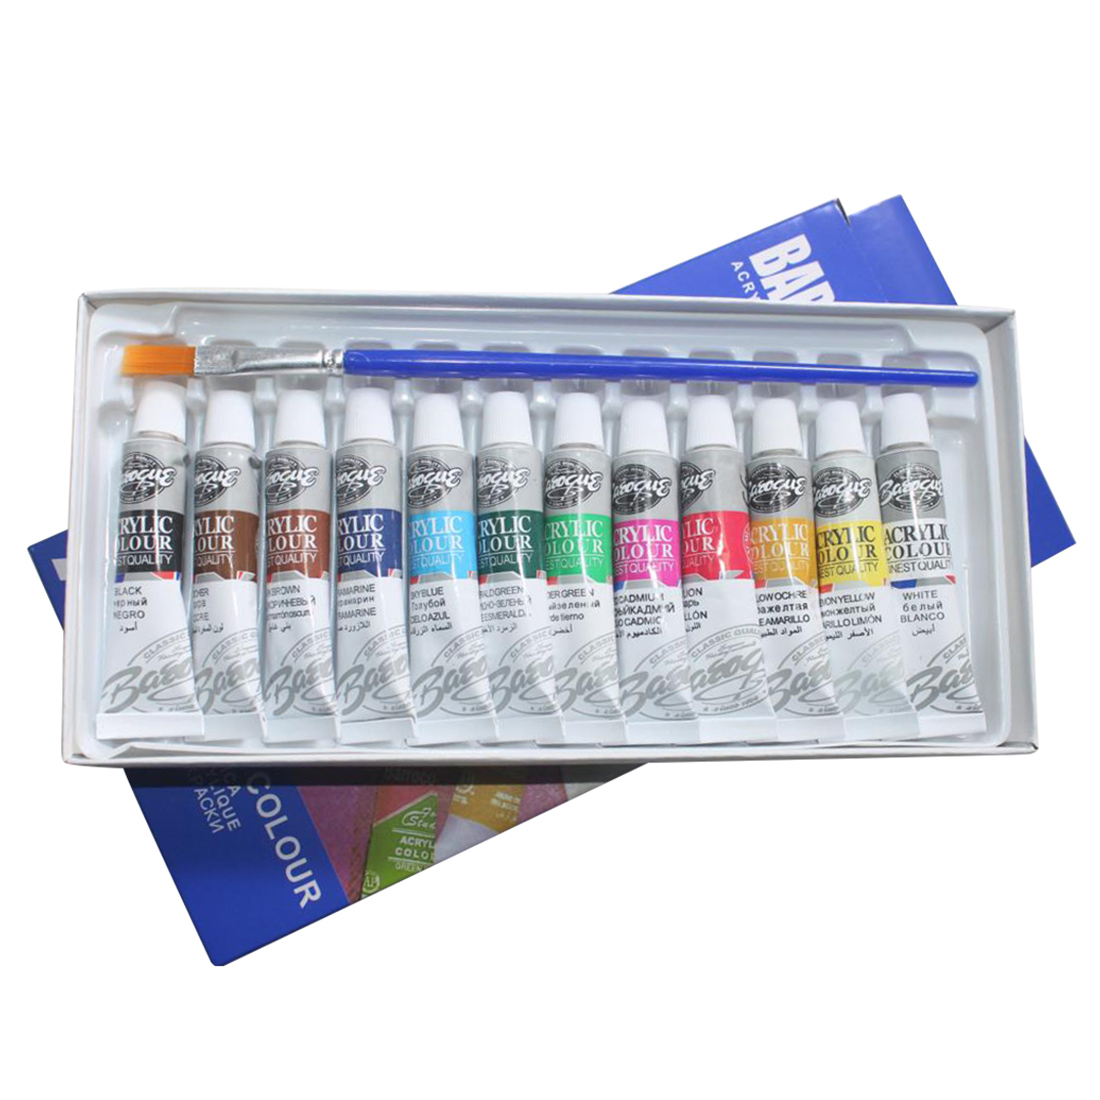 6 ML 12 Colors Professional Acrylic Paints Set Hand Painted Wall Painting Textile Paint Brightly Colored Art Supplies Brush 6 ml 12 colors professional acrylic paints set hand painted wall painting textile paint brightly colored art supplies free brush